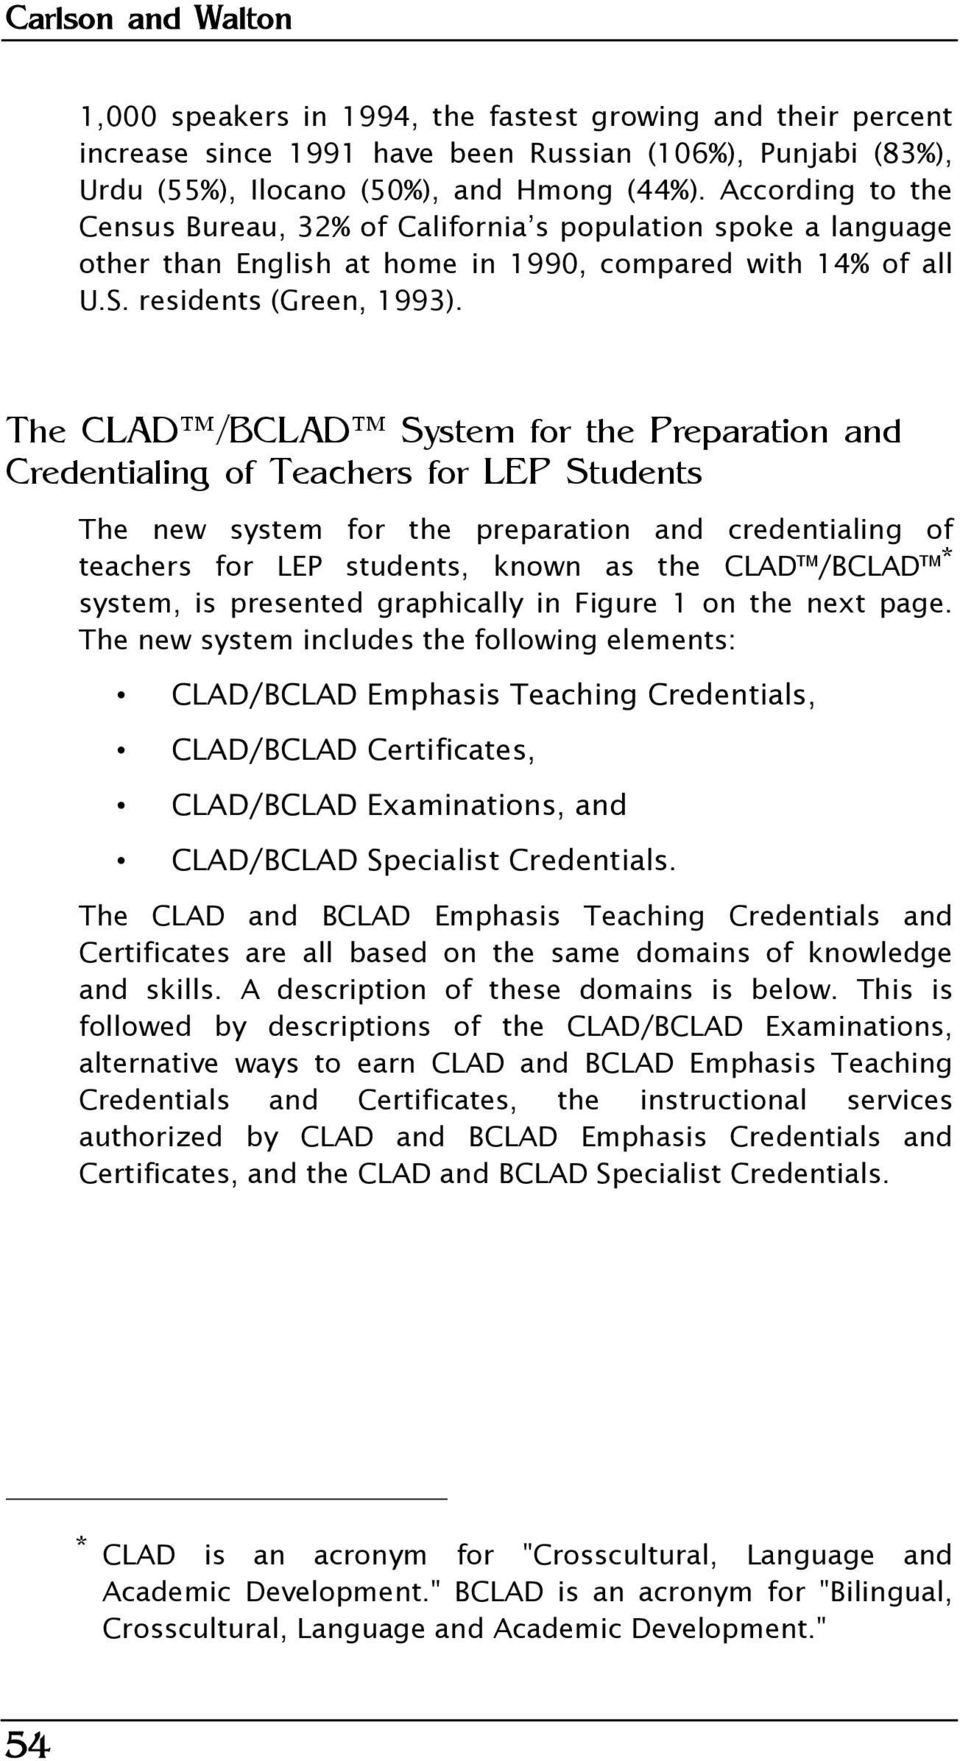 The CLAD /BCLAD System for the Preparation and Credentialing of Teachers for LEP Students The new system for the preparation and credentialing of teachers for LEP students, known as the CLADä/BCLADä